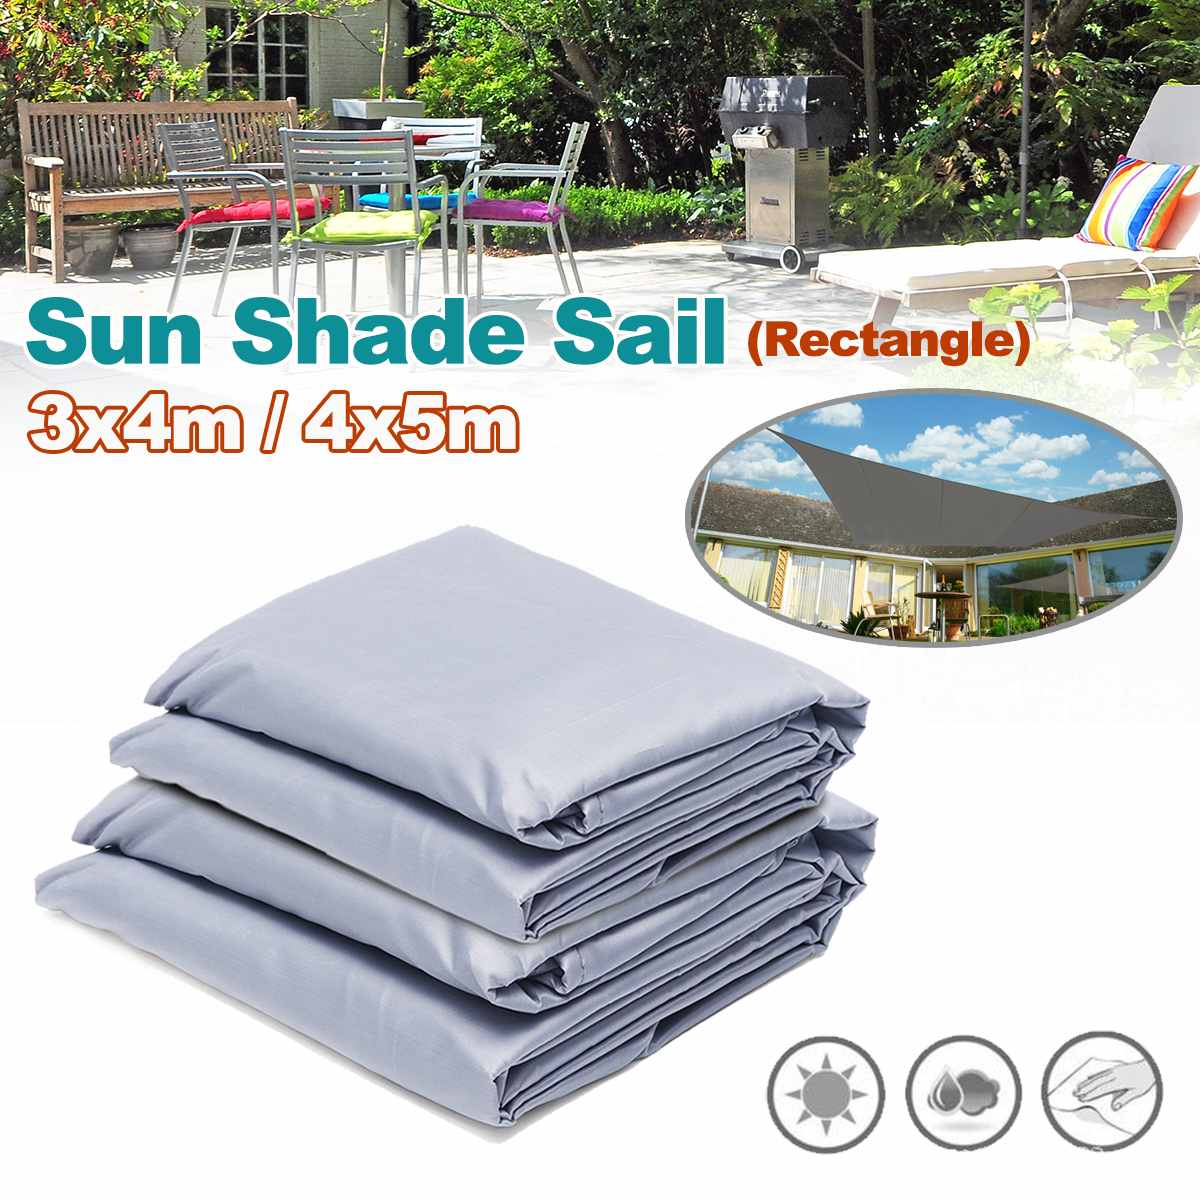 3x4m 4x5m Waterproof UV resistant Furniture Rectangle Dust Cover For Outdoor Garden Table